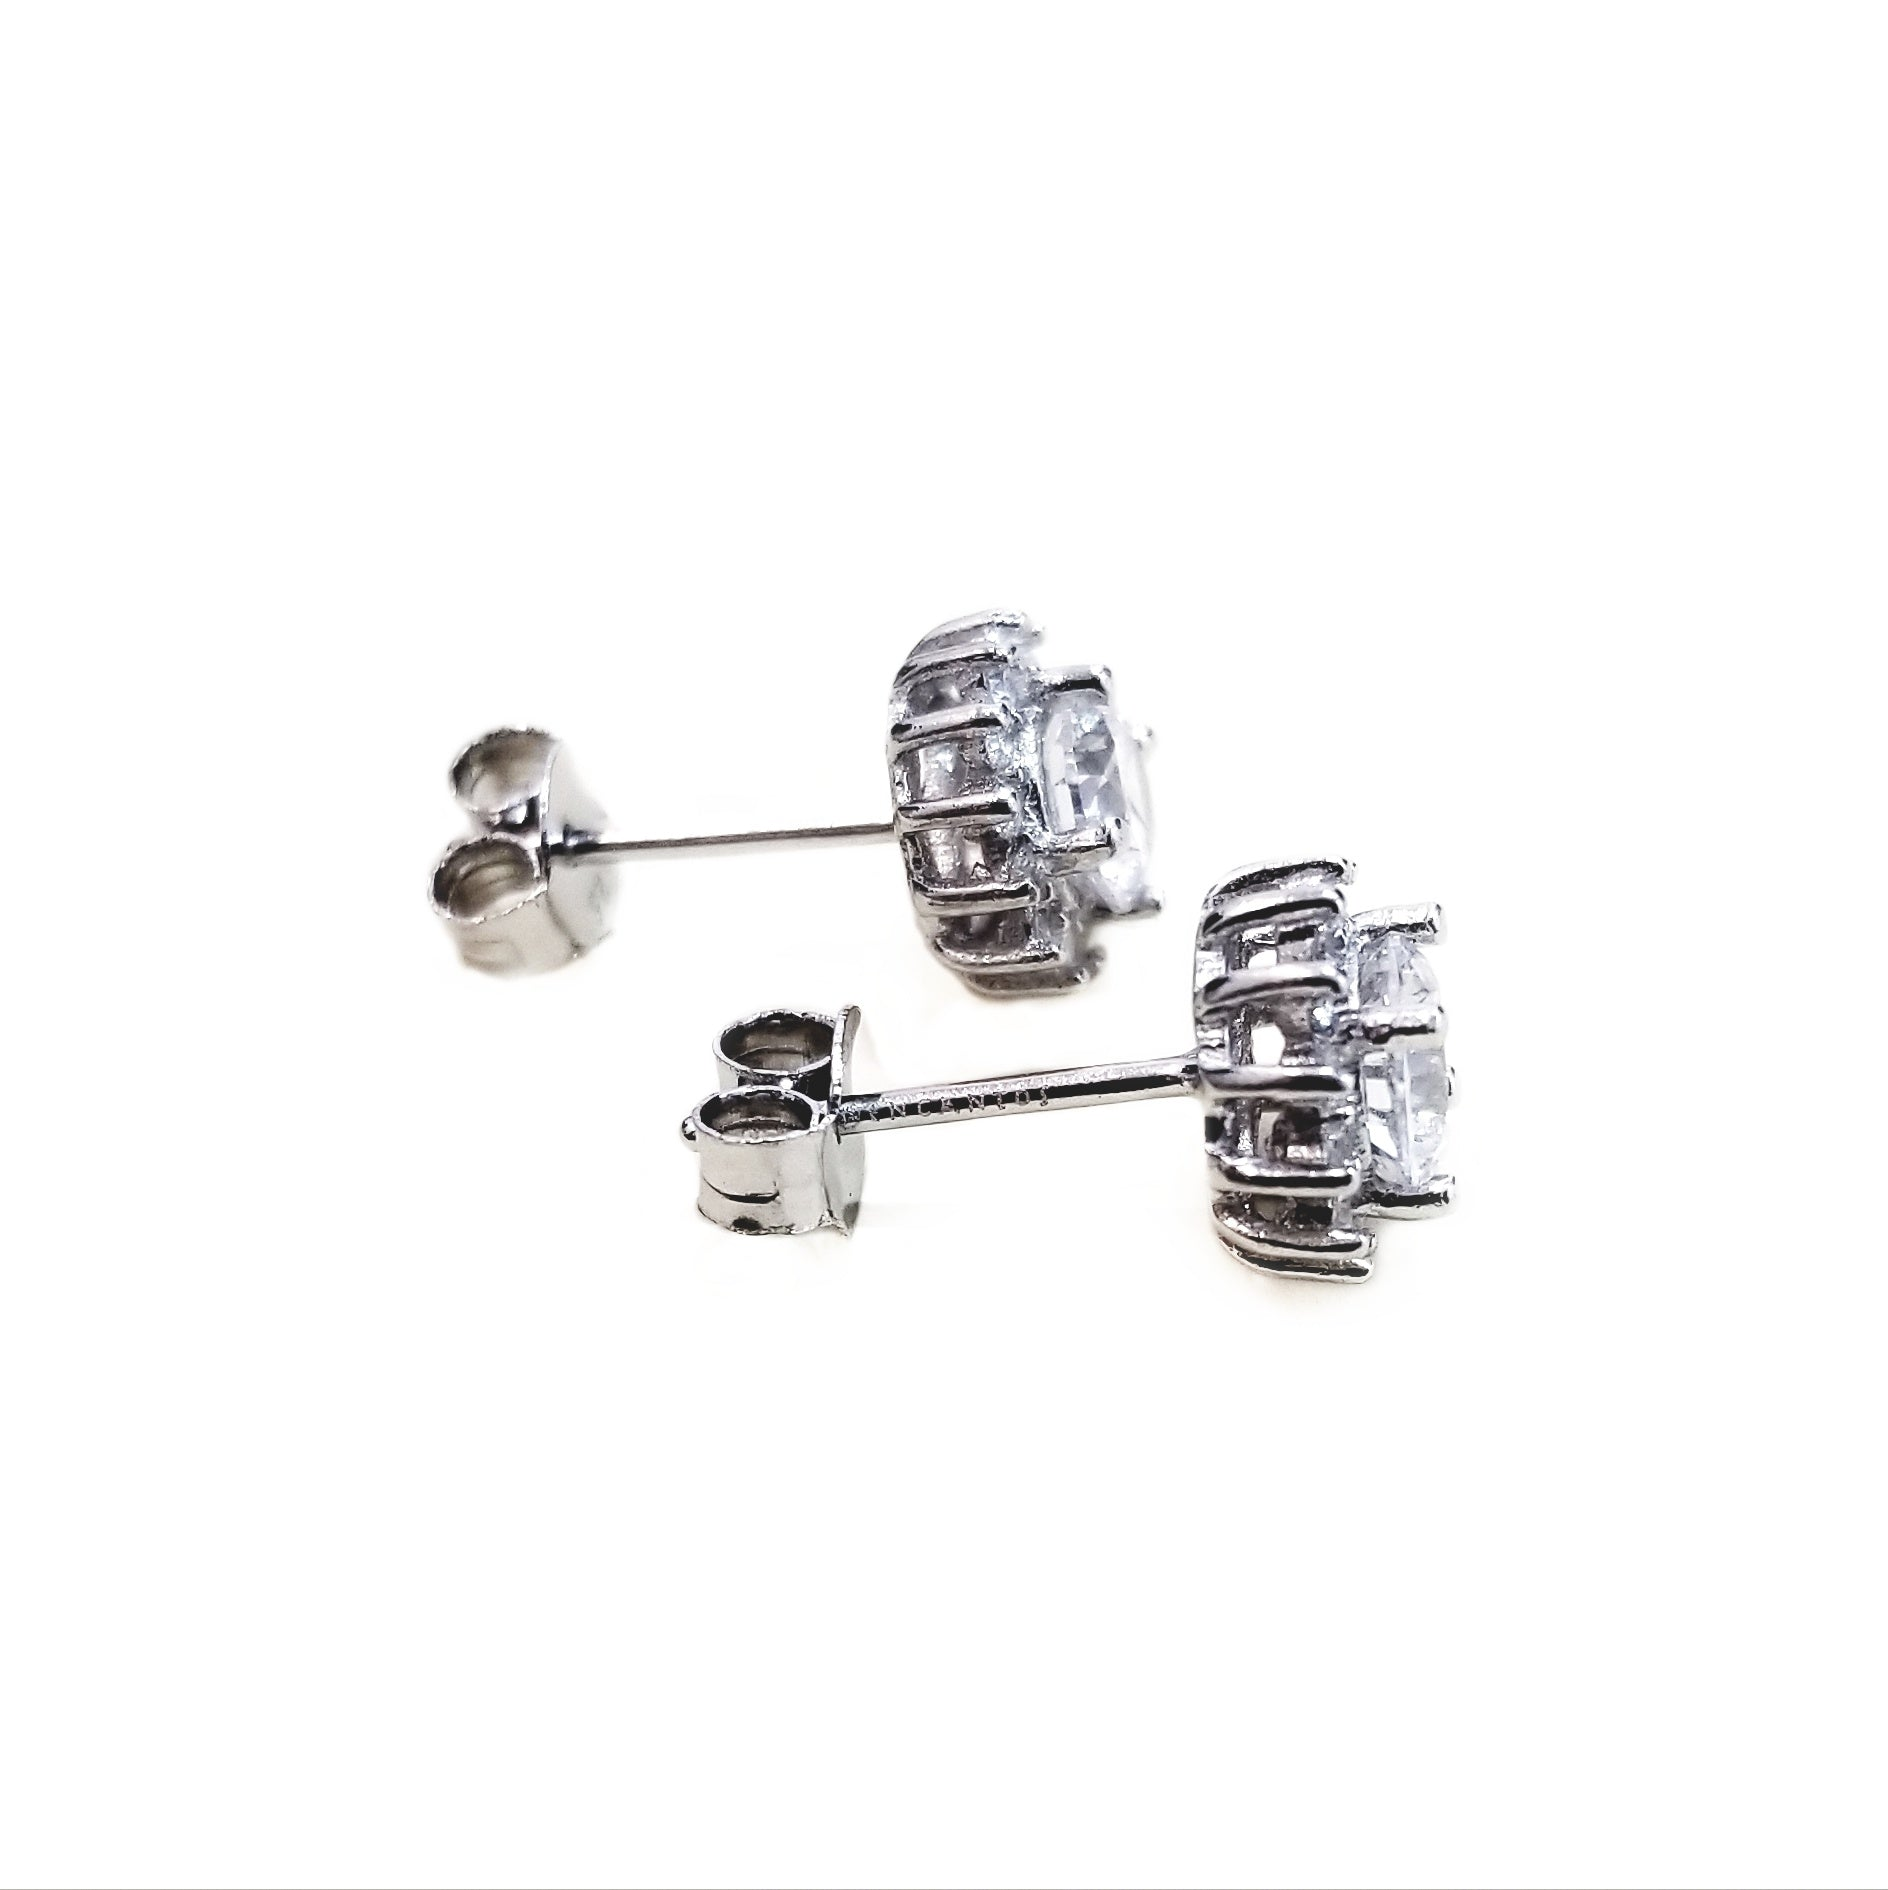 Earrings with zirconia and rhodium-plated silver gift idea